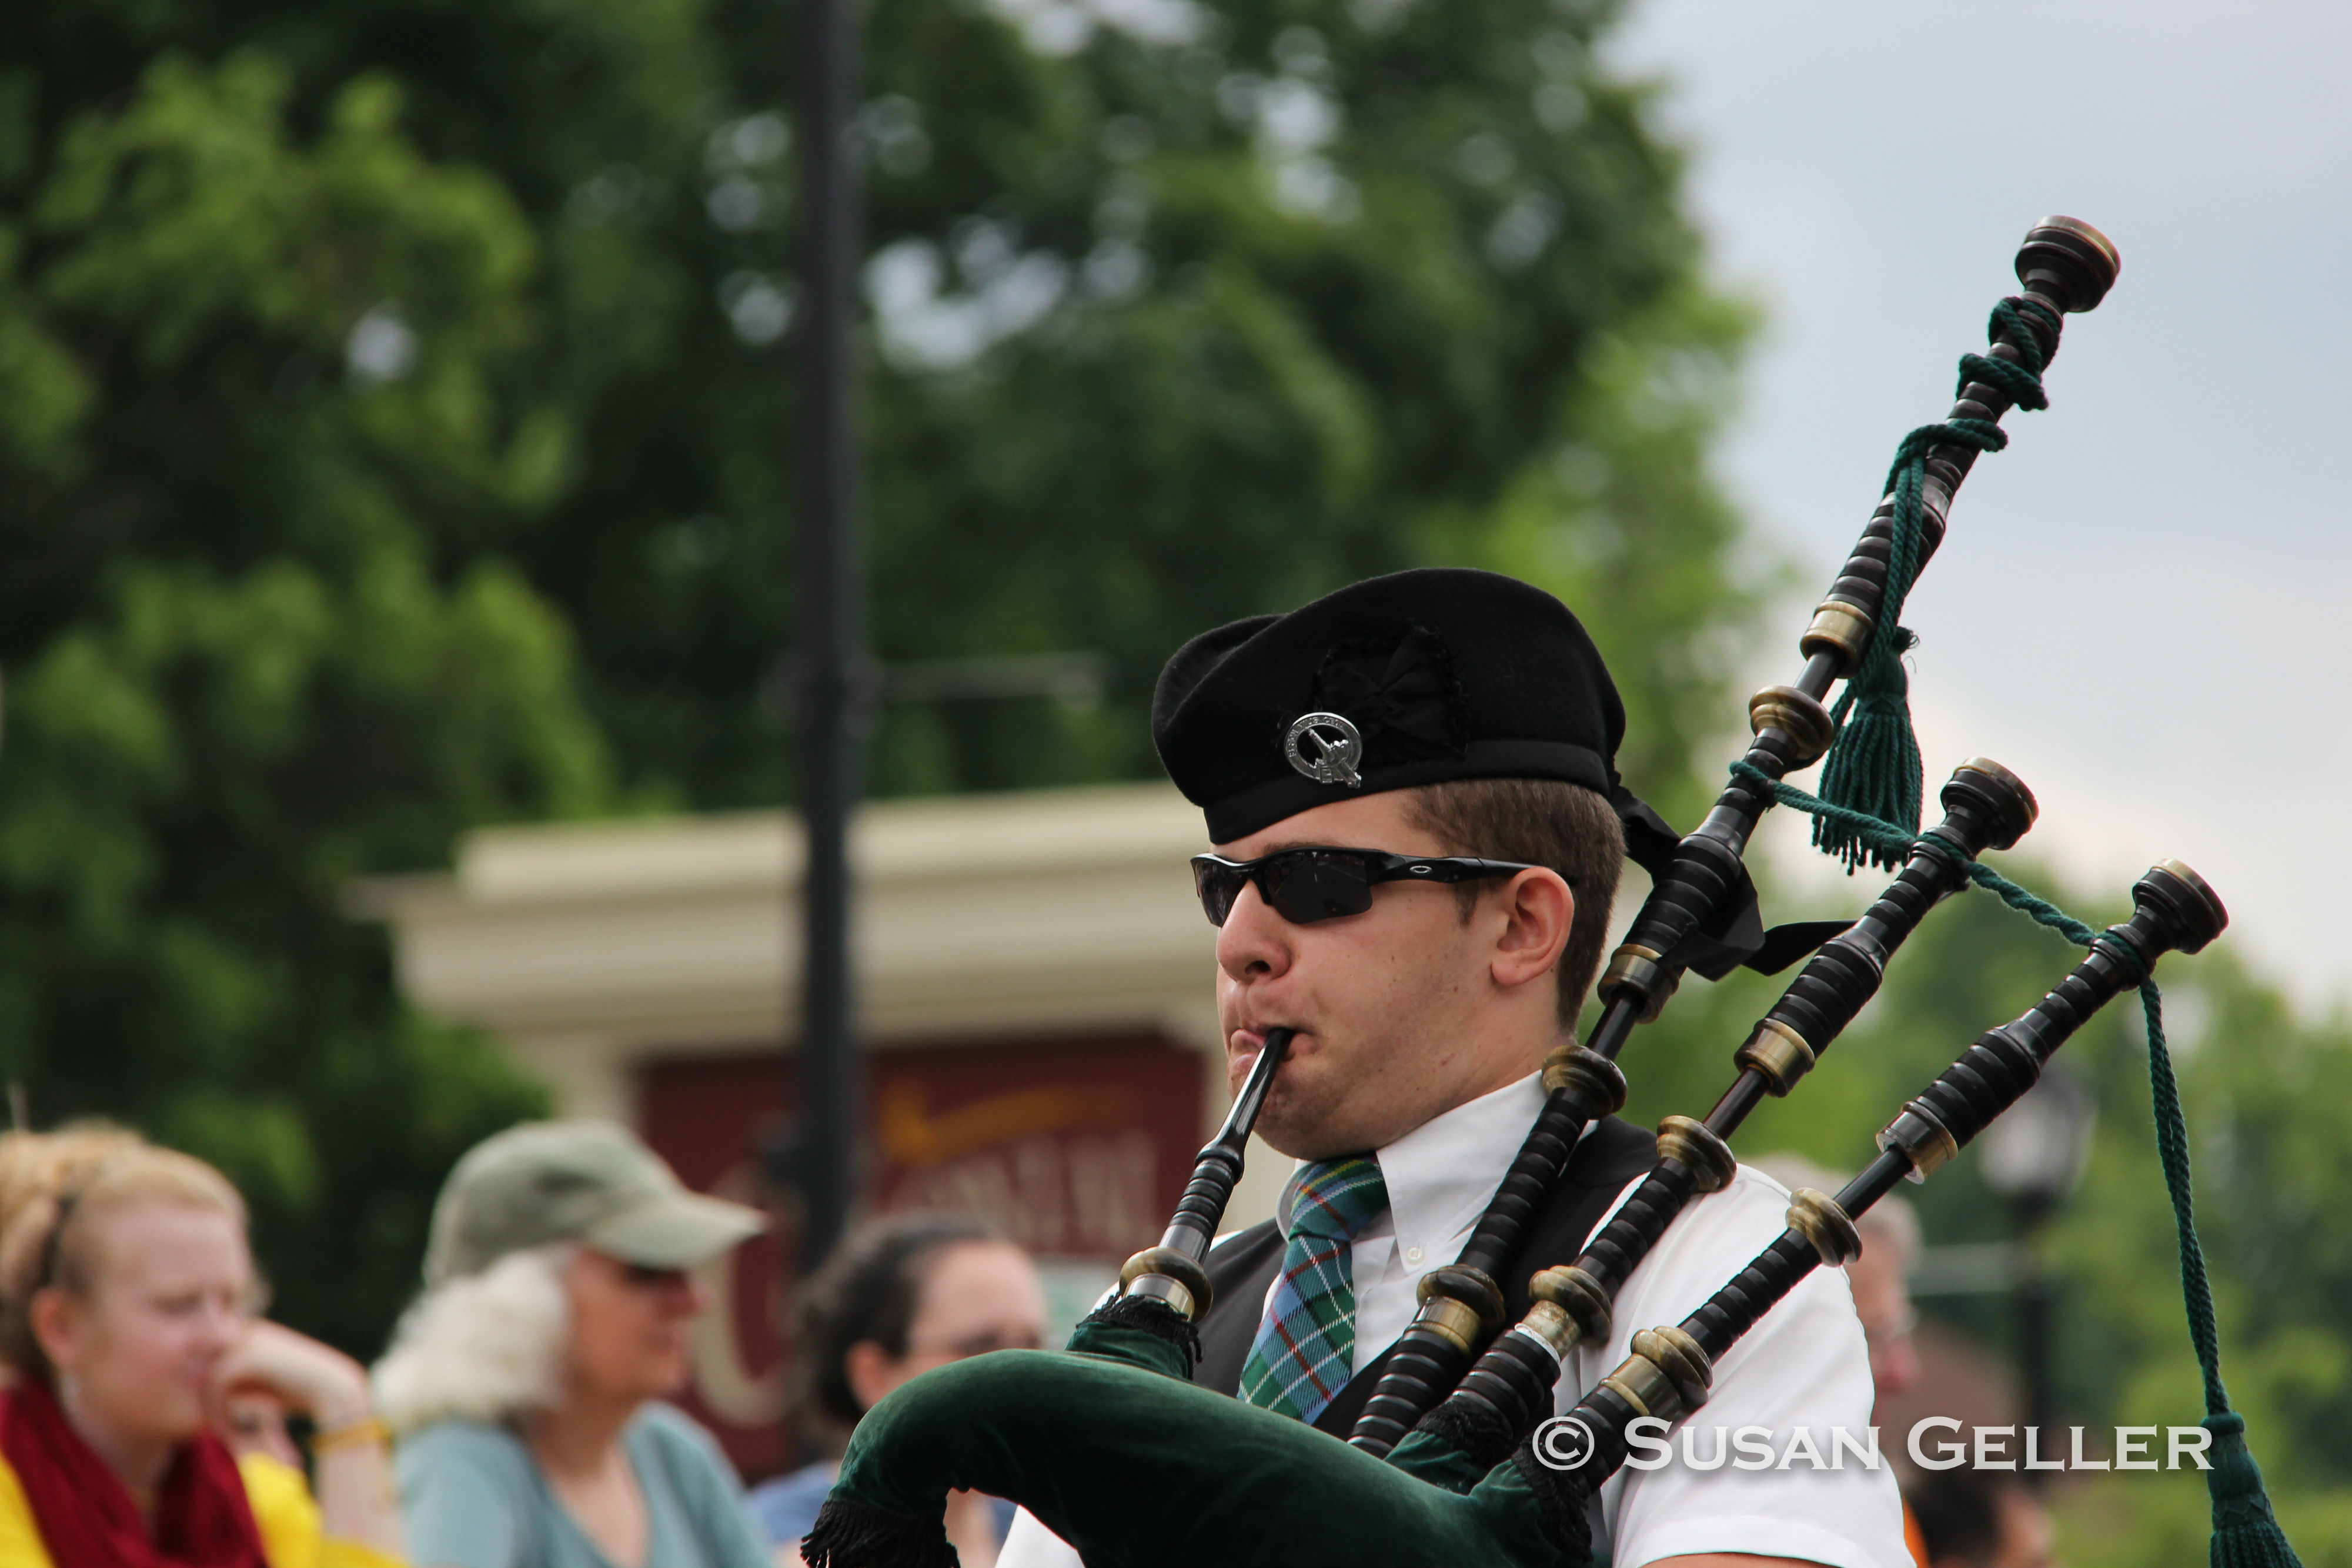 Bagpipers skirl in the July 4 parade. Courtesy photo by Susan Geller